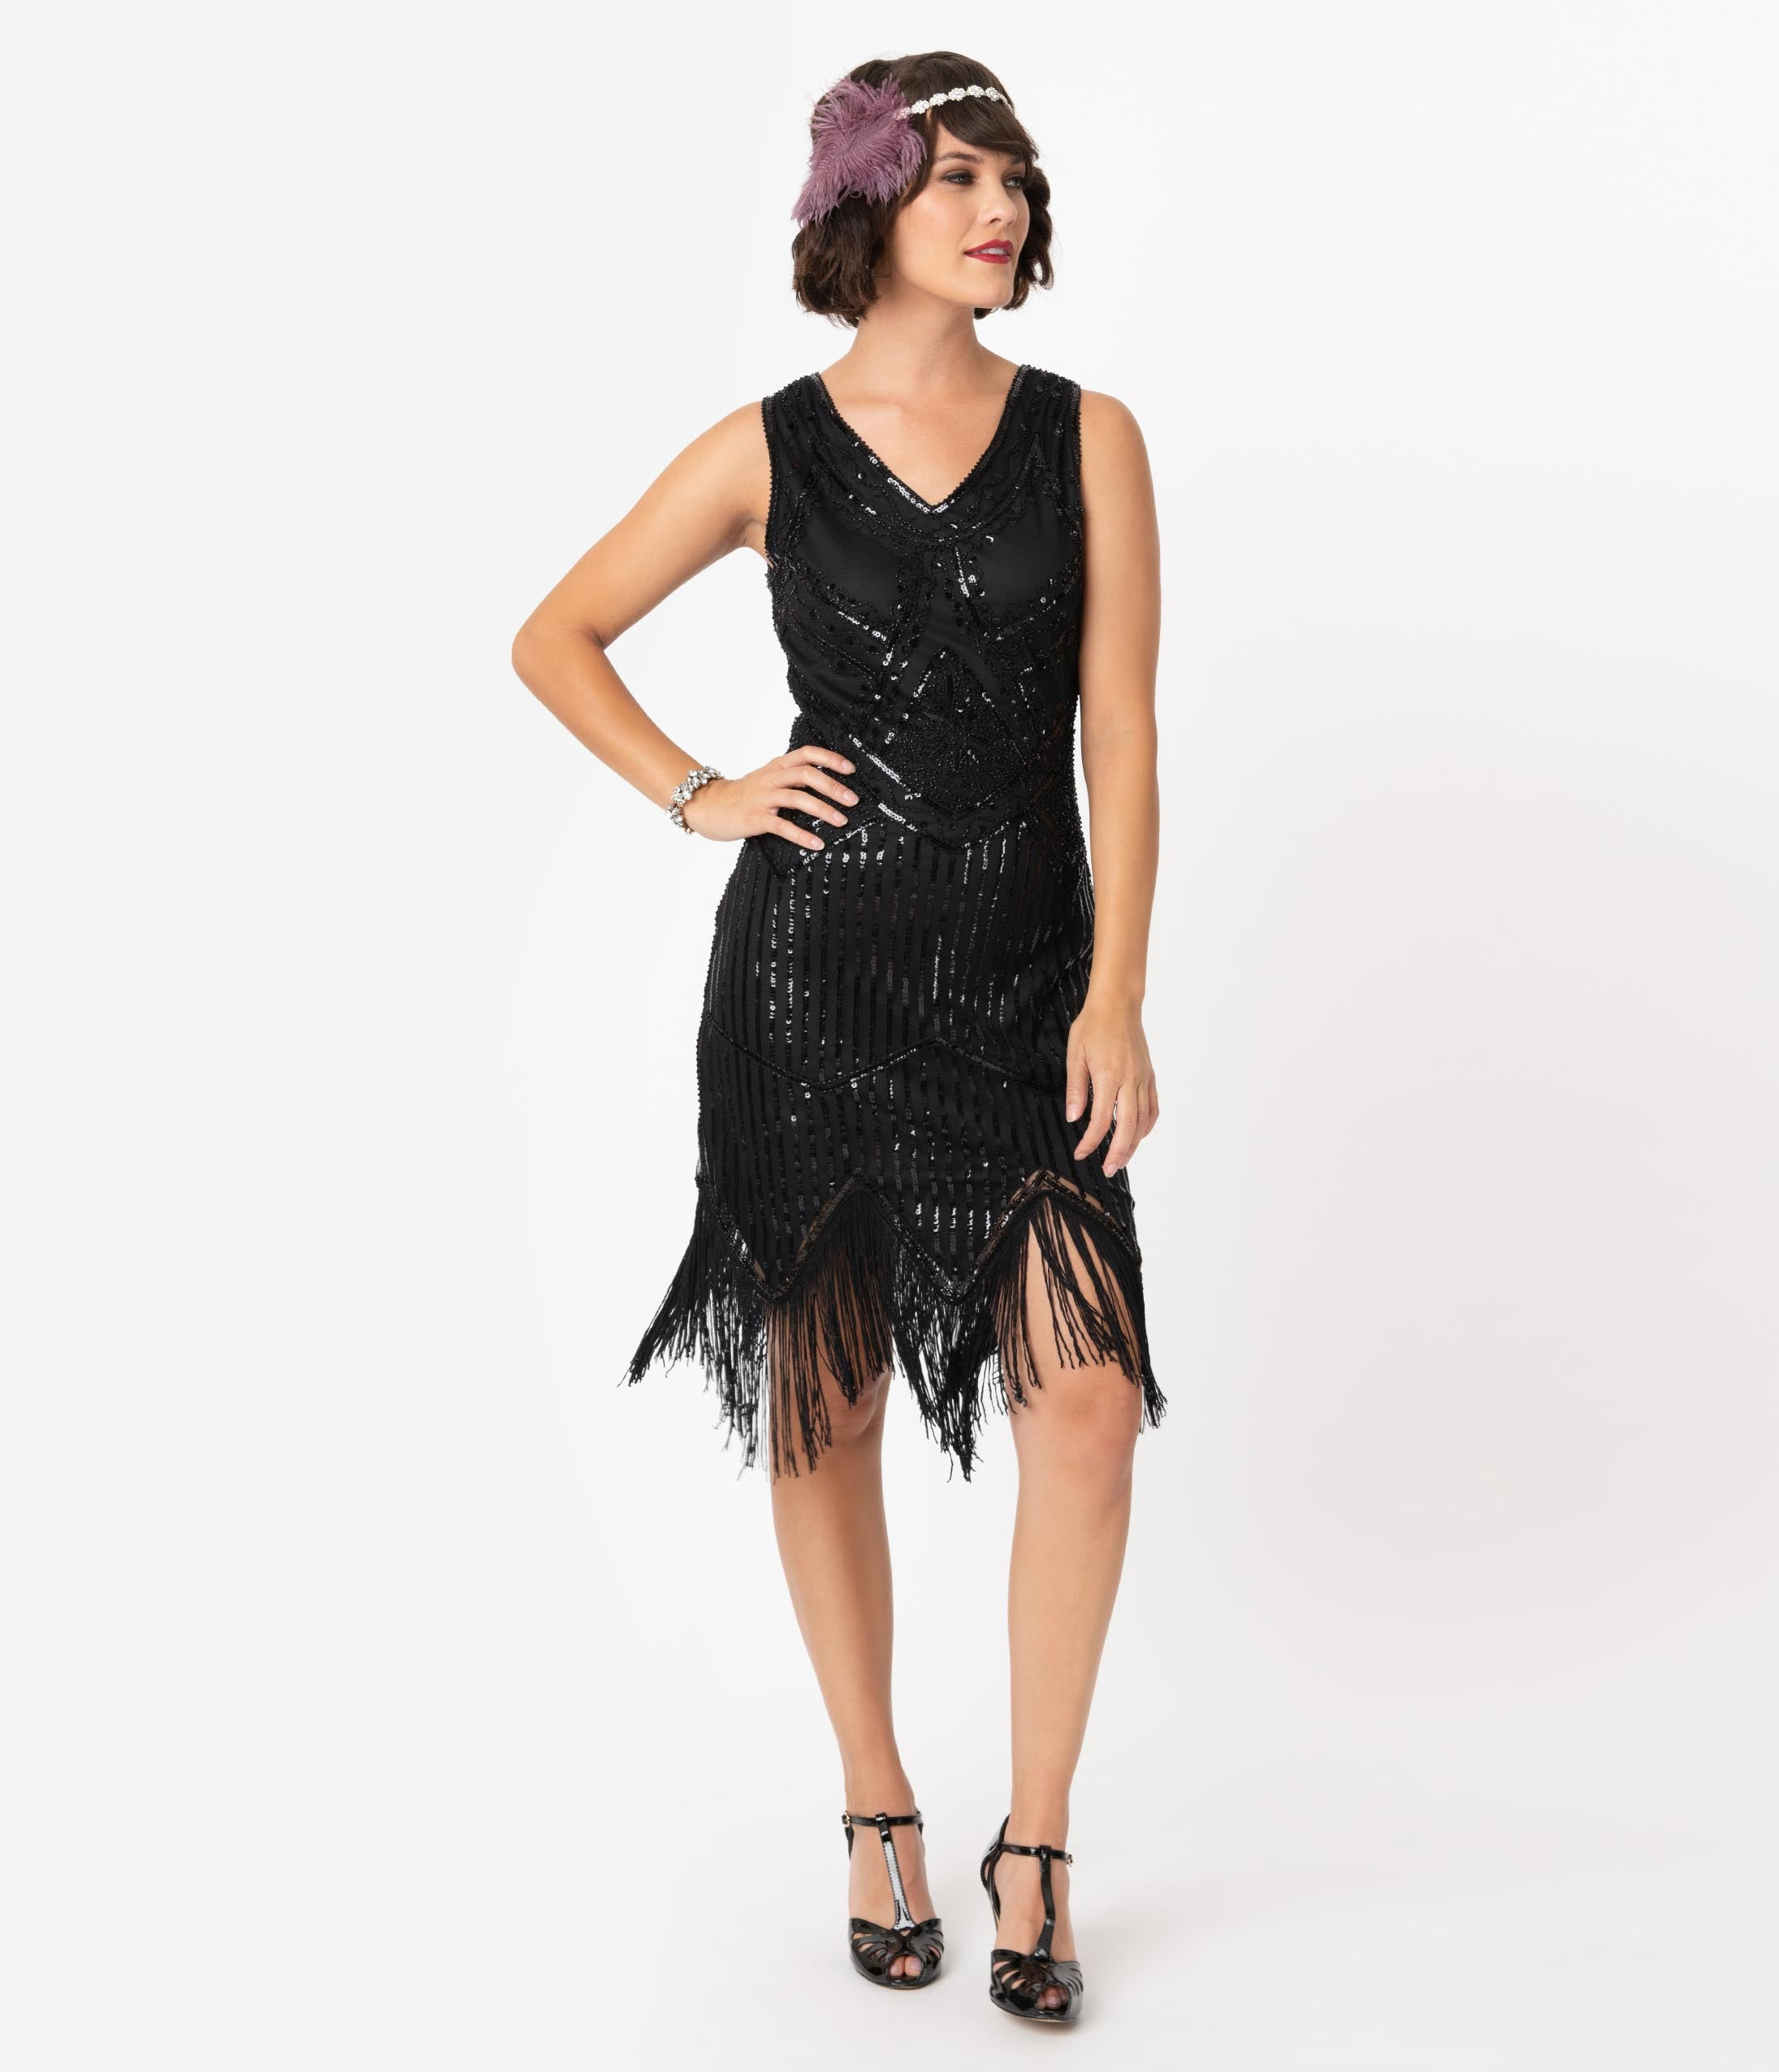 1920s Evening Dresses & Formal Gowns Unique Vintage 1920S Black Beaded Sequin Juliette Fringe Flapper Dress $98.00 AT vintagedancer.com